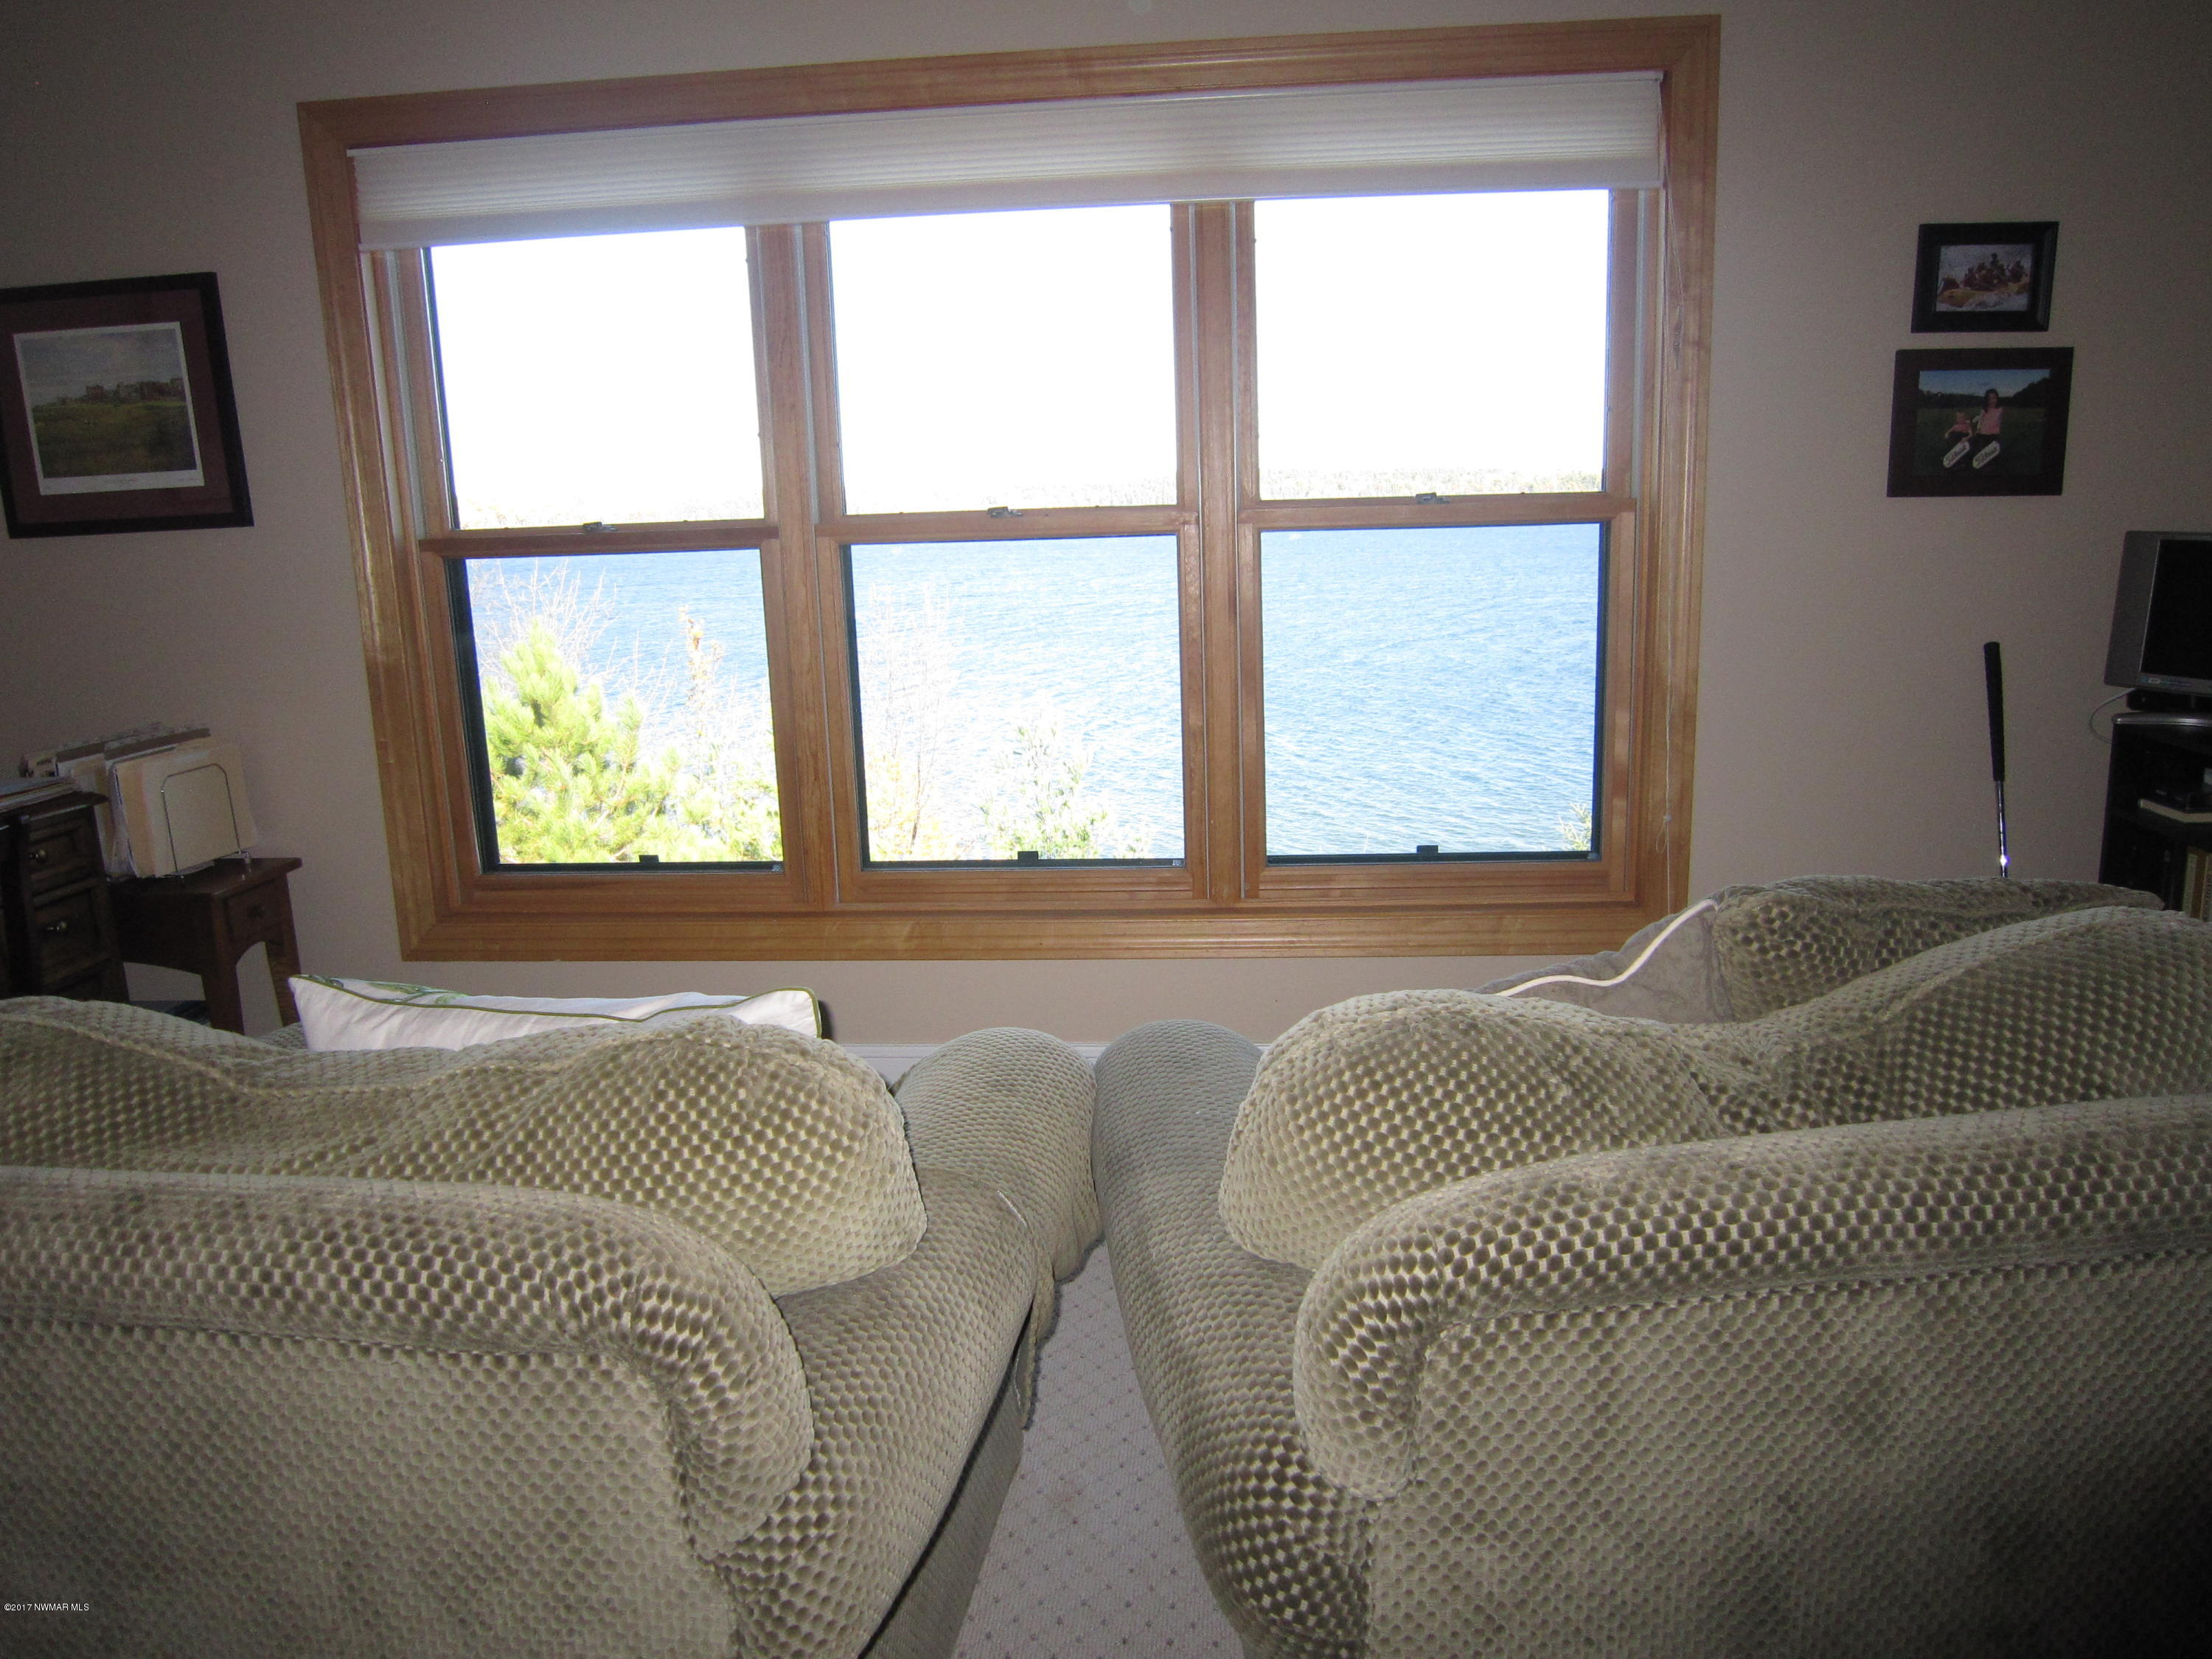 View from sitting room of lake